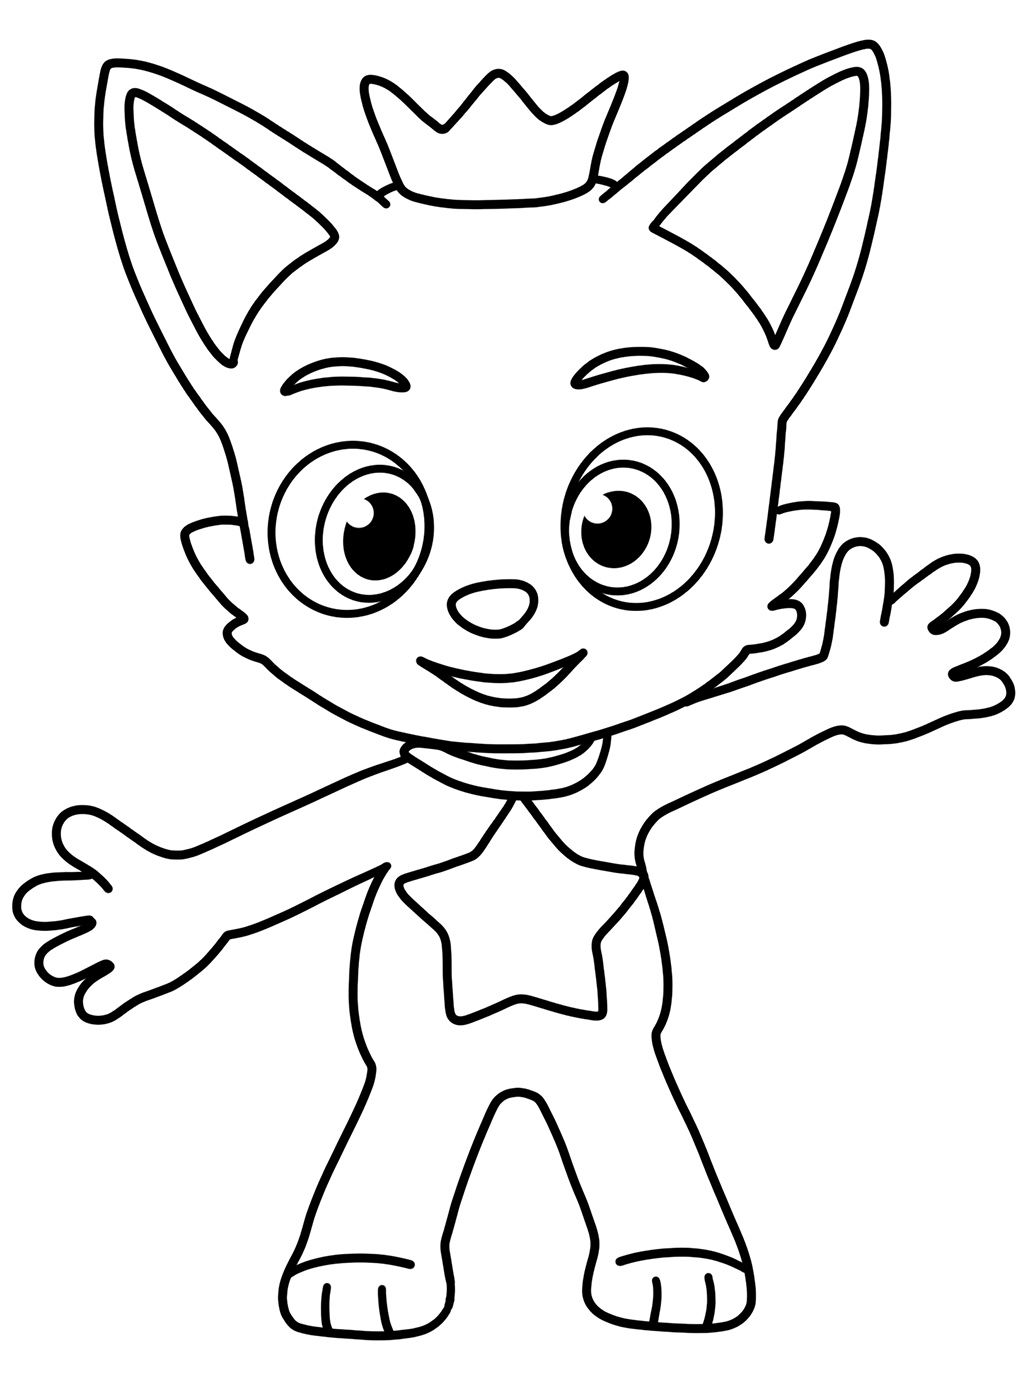 Pinkfong Coloring Pages For Kids Dolphin Coloring Pages Picasso Coloring Tinkerbell Coloring Pages